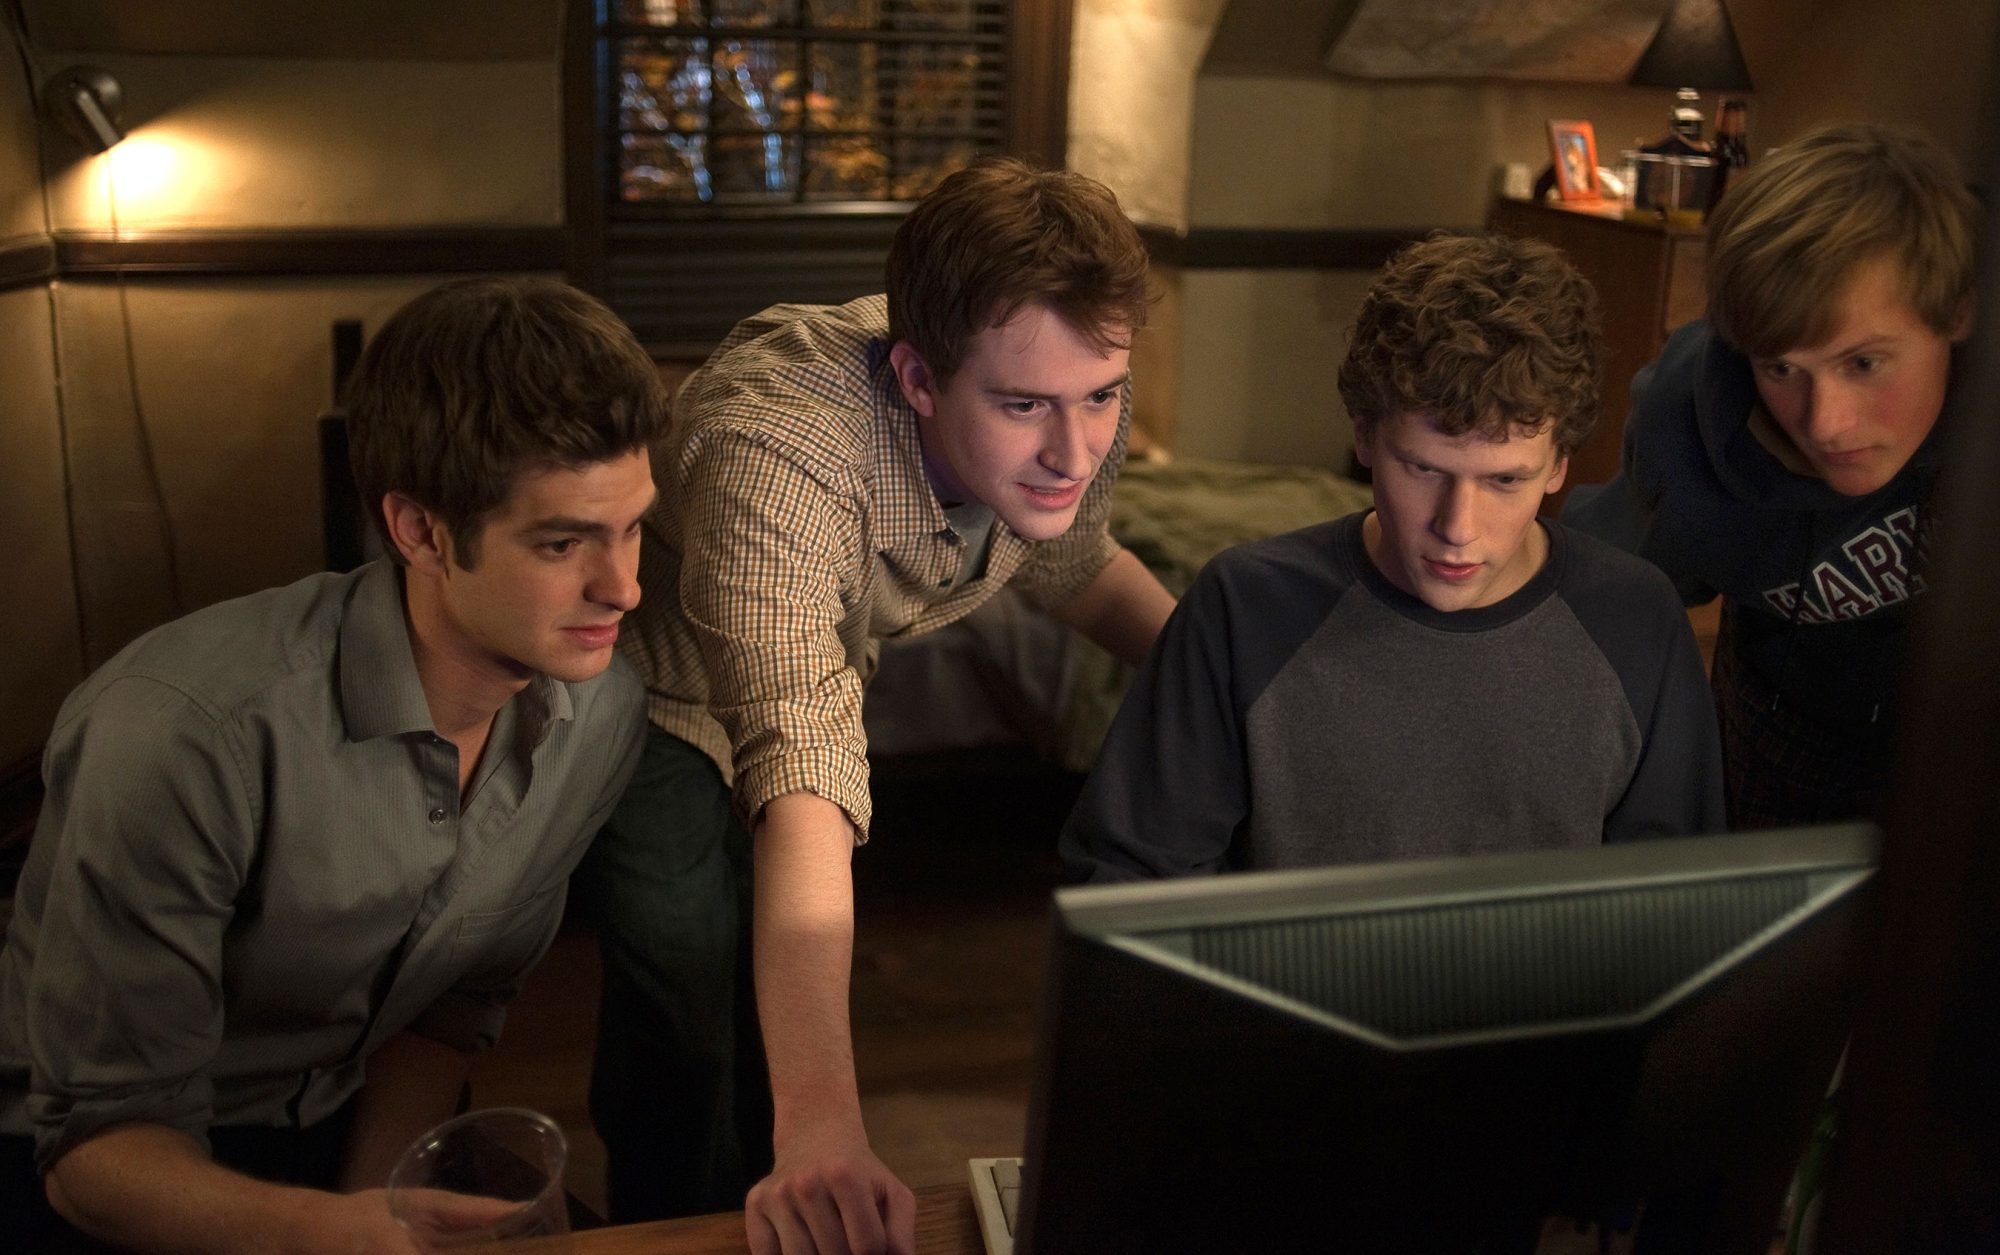 The Social Network, then and now